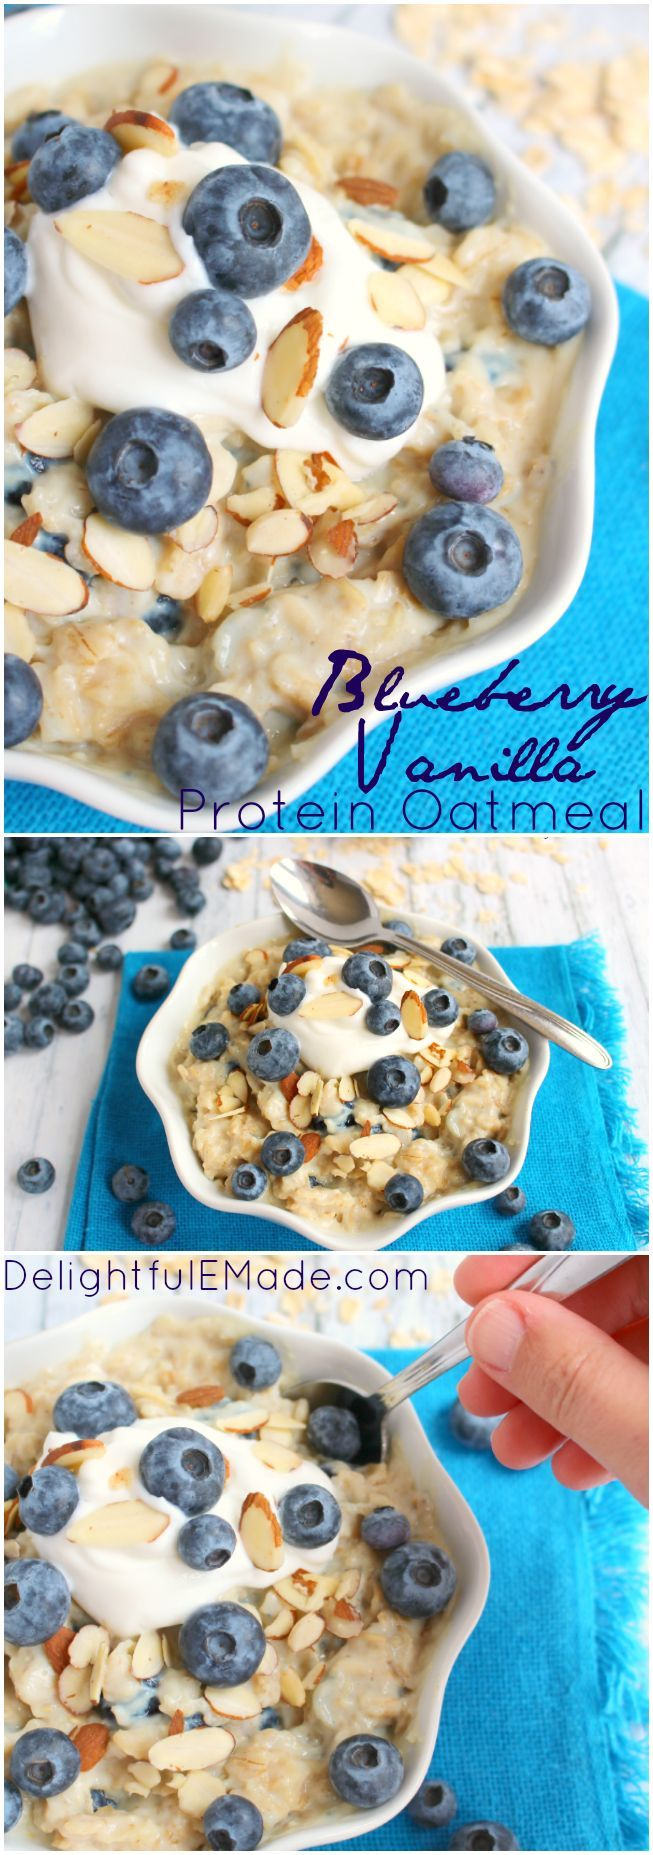 A healthy, easy and delicious way to start your day! Creamy, delicious vanilla oatmeal mixed with plump, fresh blueberries make for a breakfast that's loaded with protein and fiber keeping you full all the way to lunchtime! #powerinprotein #ad